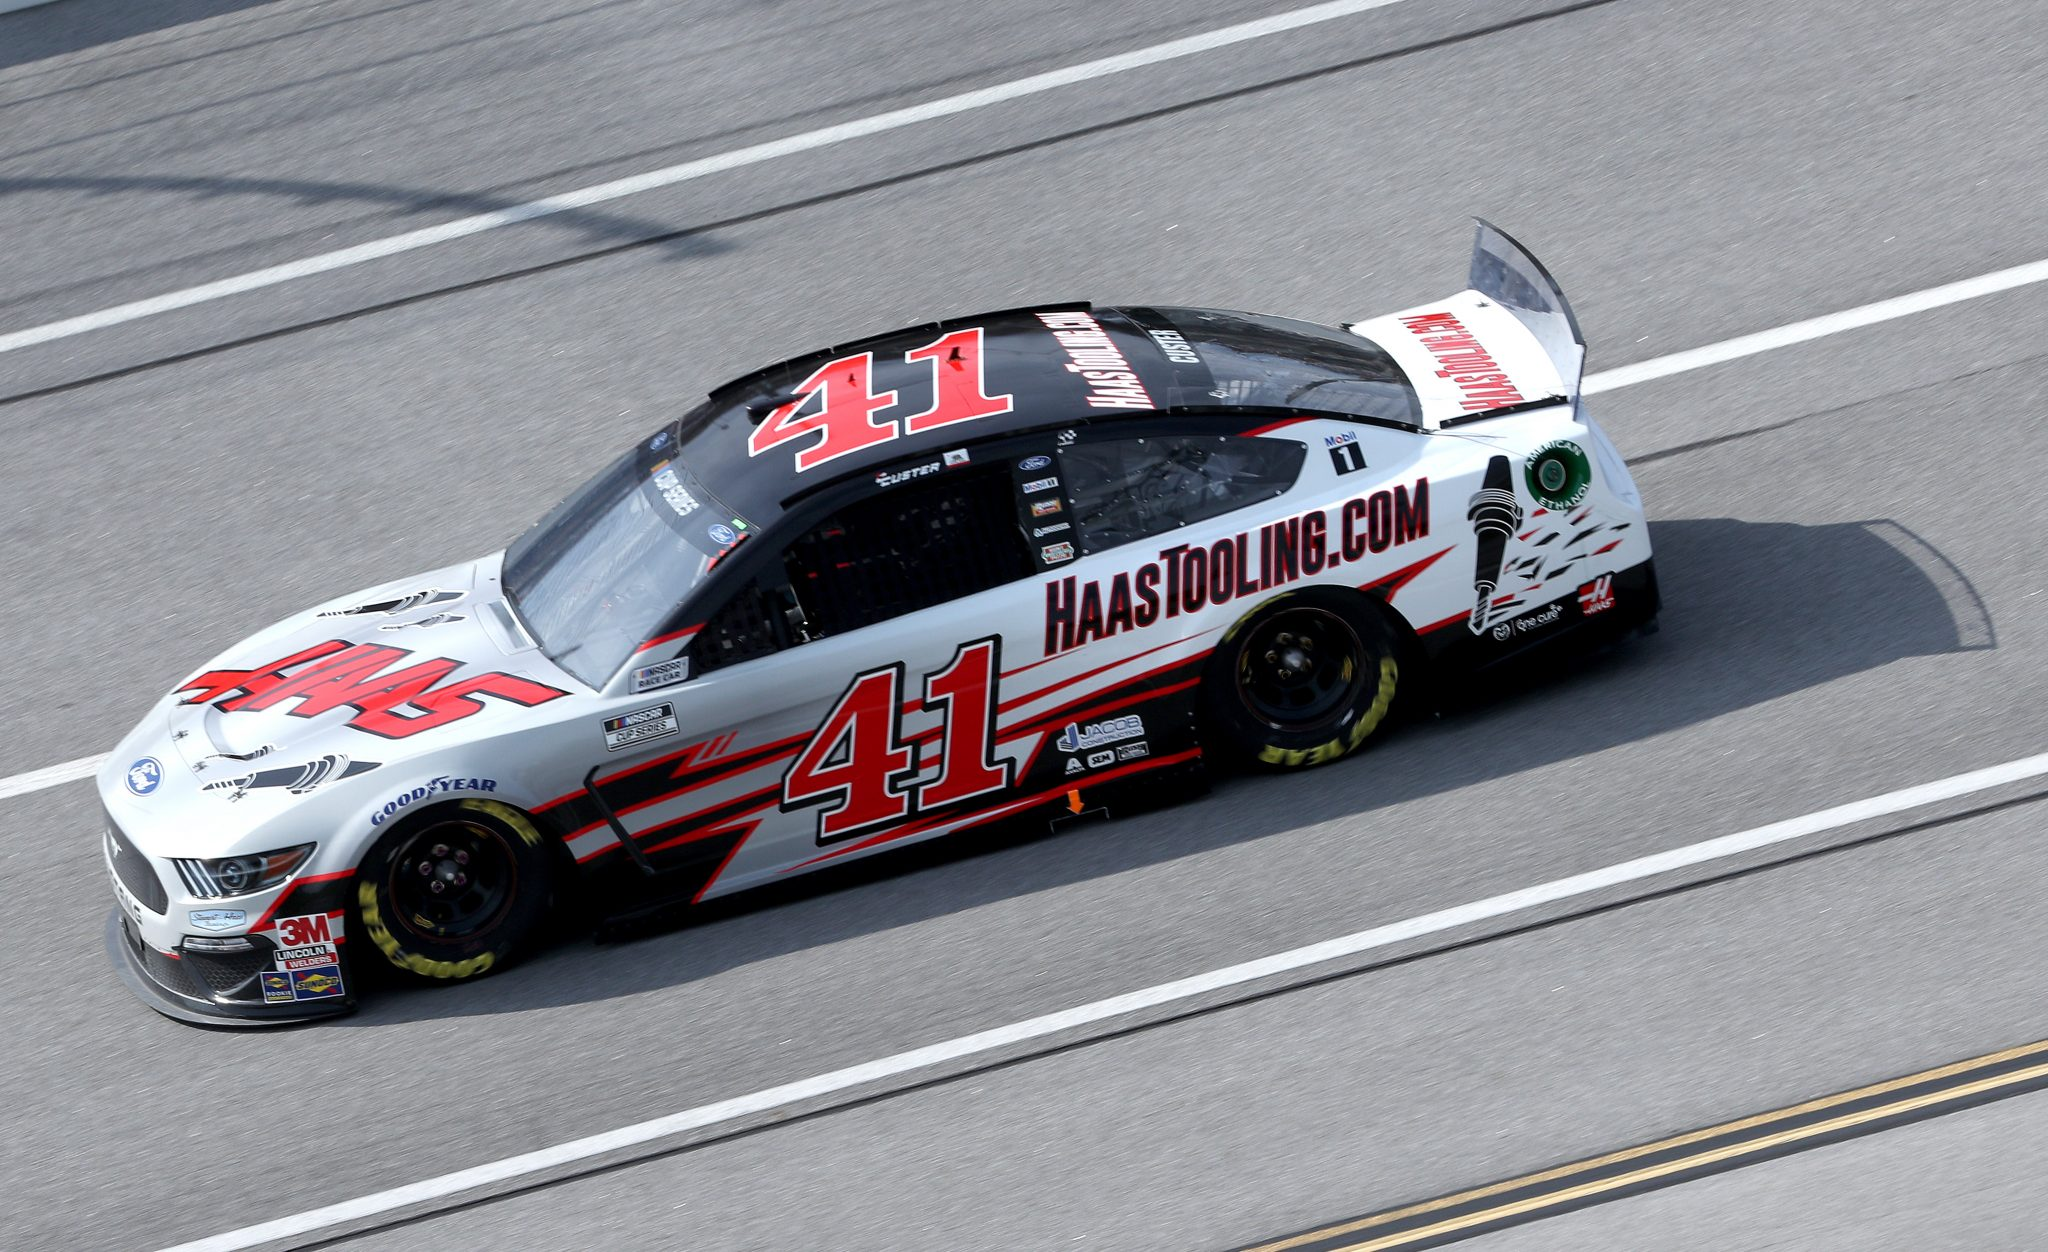 TALLADEGA, ALABAMA - OCTOBER 04: Cole Custer, driver of the #41 HaasTooling.com Ford, drives during the NASCAR Cup Series YellaWood 500 at Talladega Superspeedway on October 04, 2020 in Talladega, Alabama. (Photo by Chris Graythen/Getty Images) | Getty Images